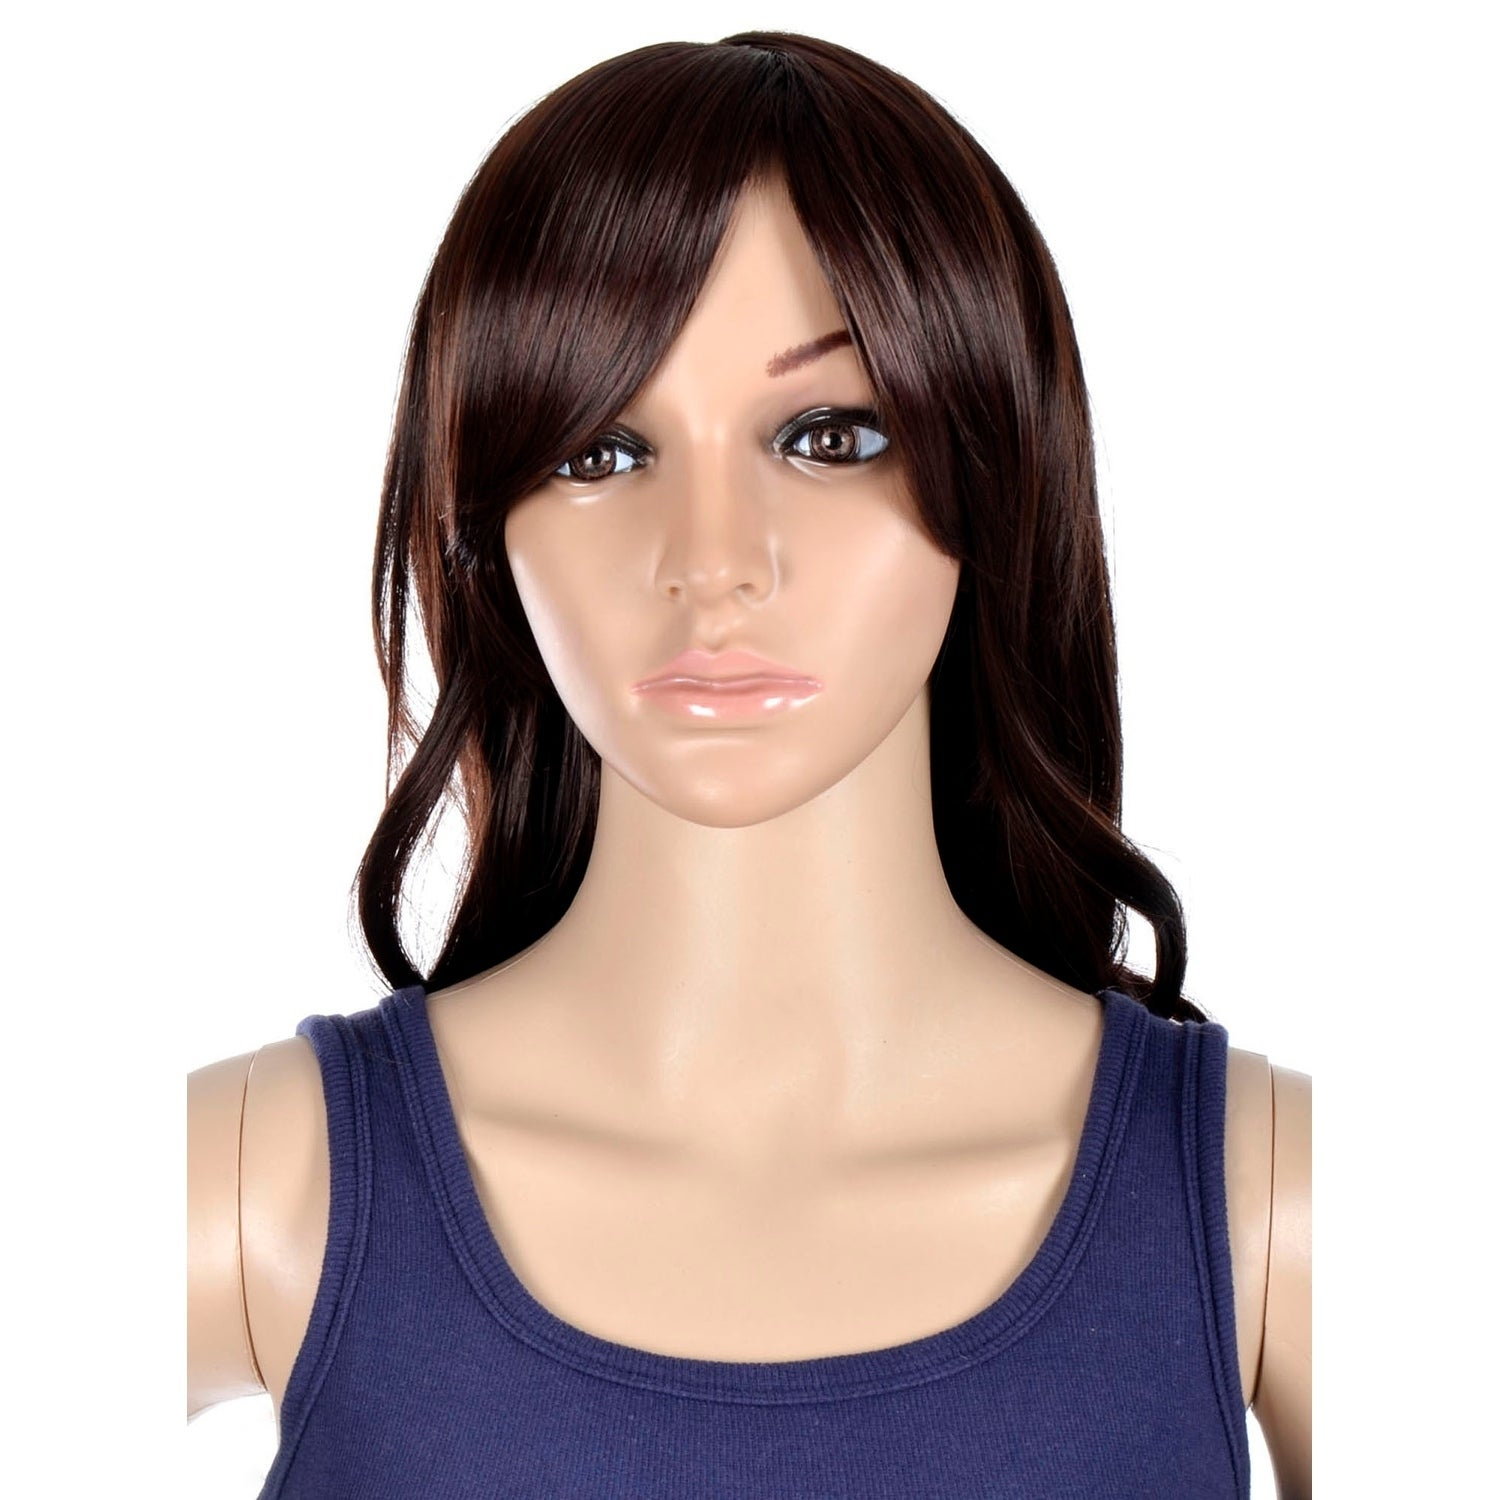 Shop Simplicity Women s Daily Wear and Costume Wig - Long Curly Brown 75 -  Free Shipping On Orders Over  45 - Overstock.com - 17779650 9272e1b8ee4d